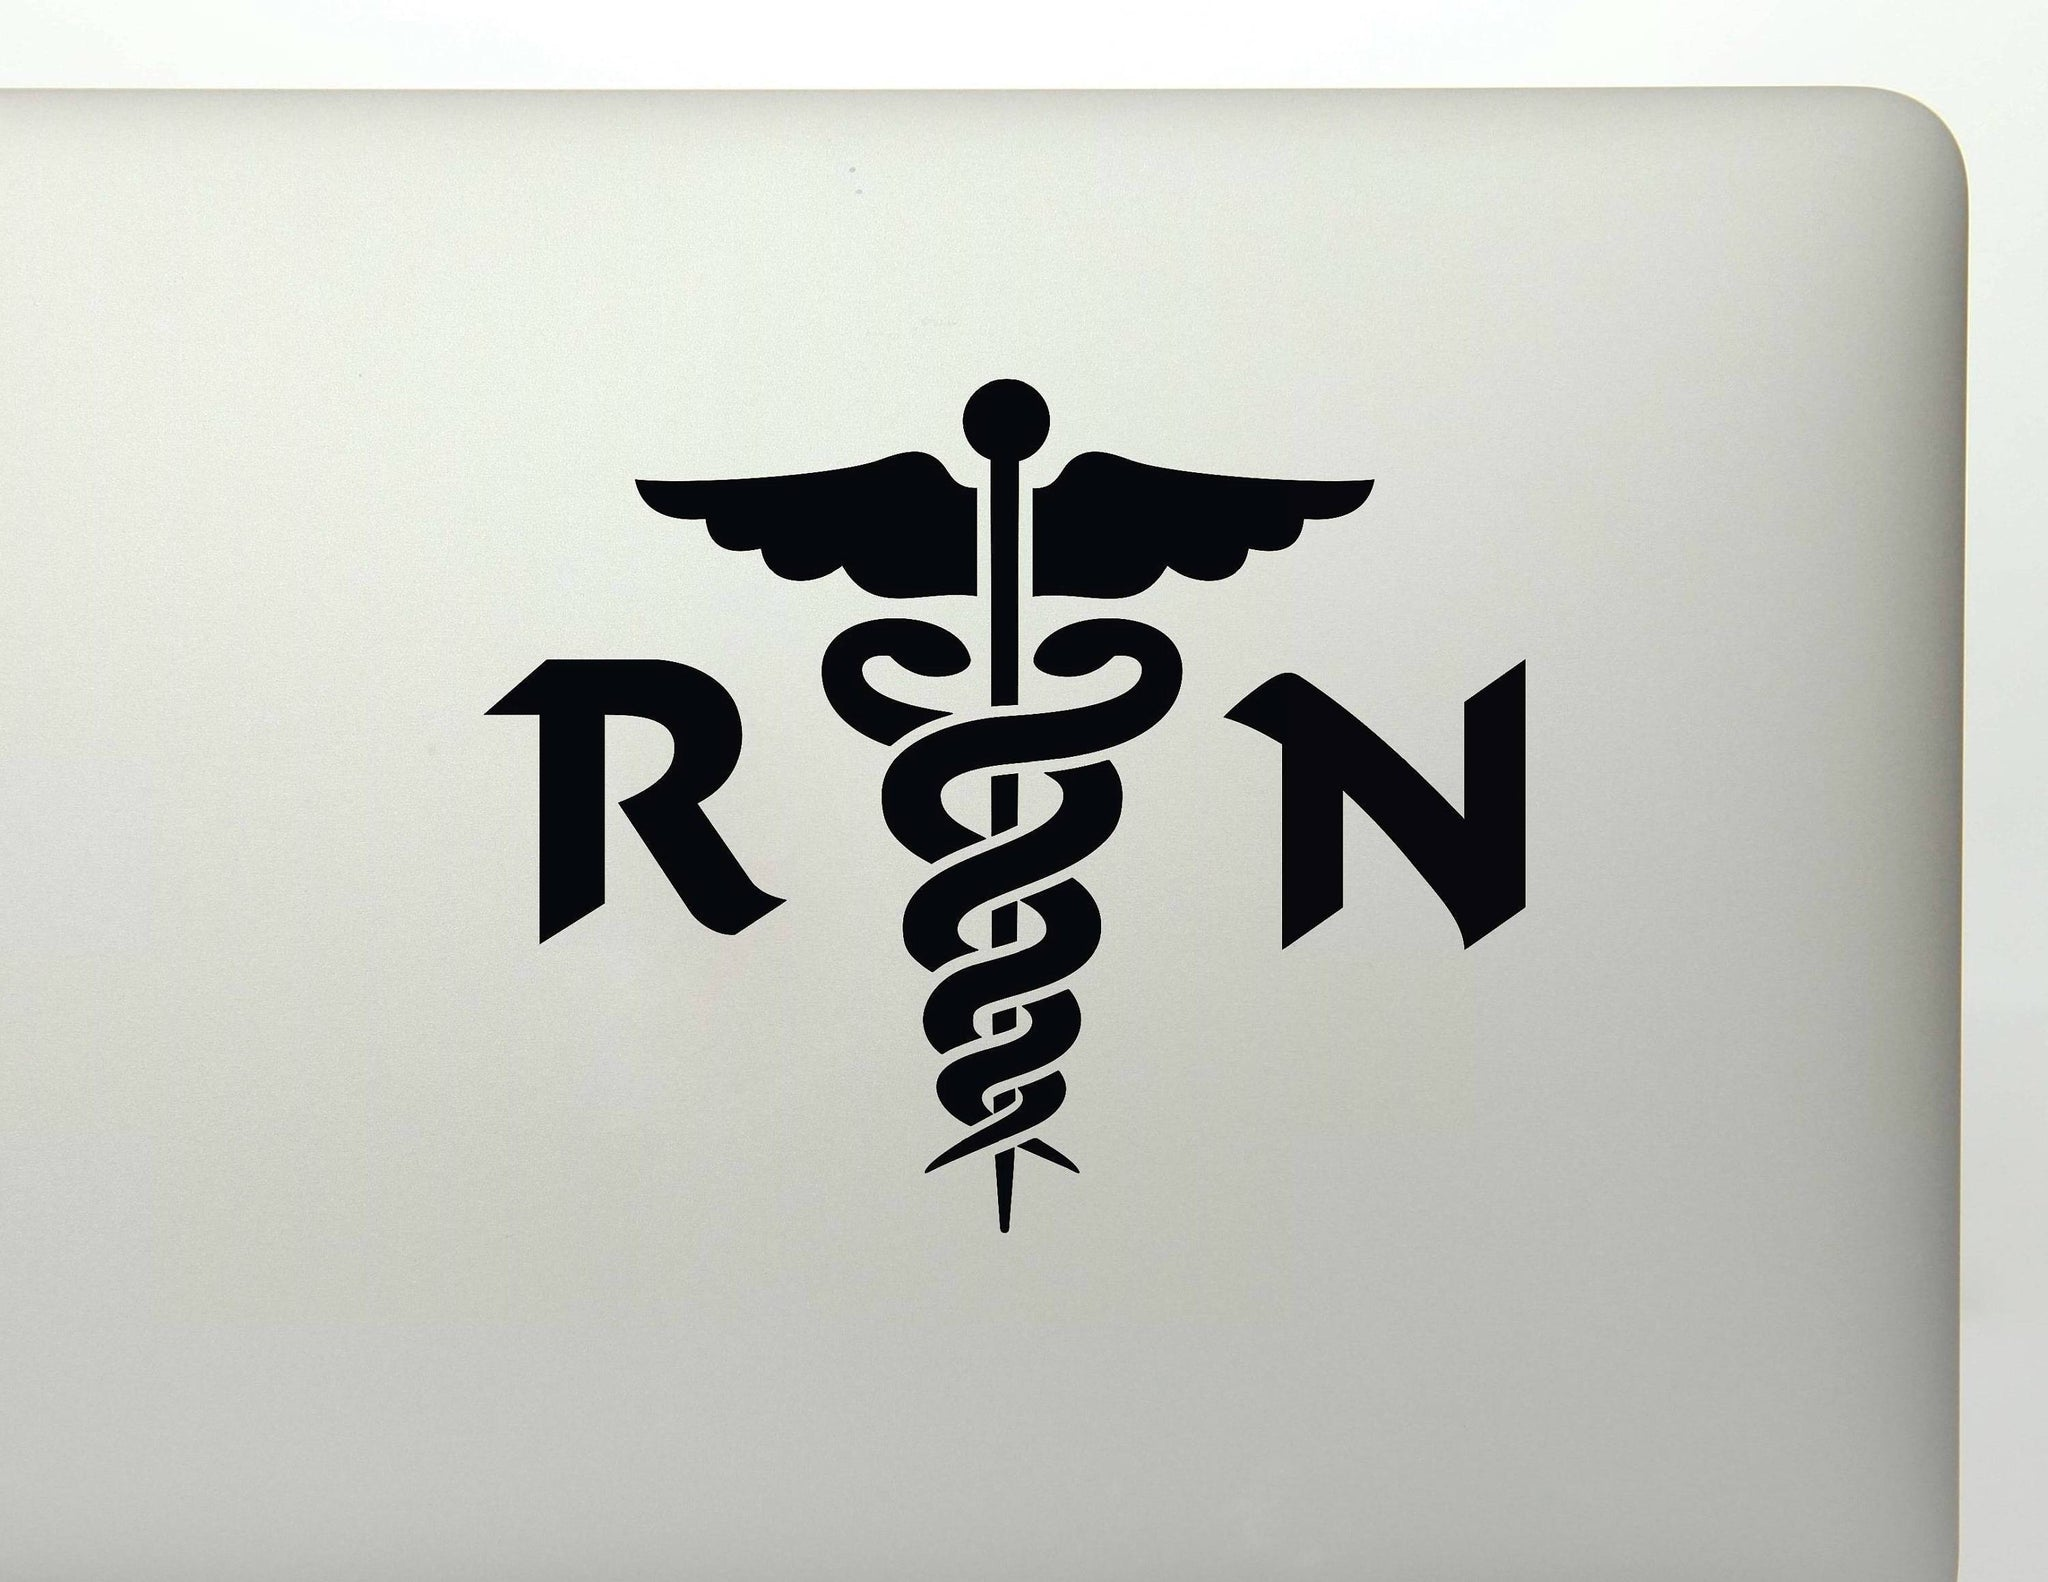 RN Nurse Medical Symbol Vinyl Decal Sticker